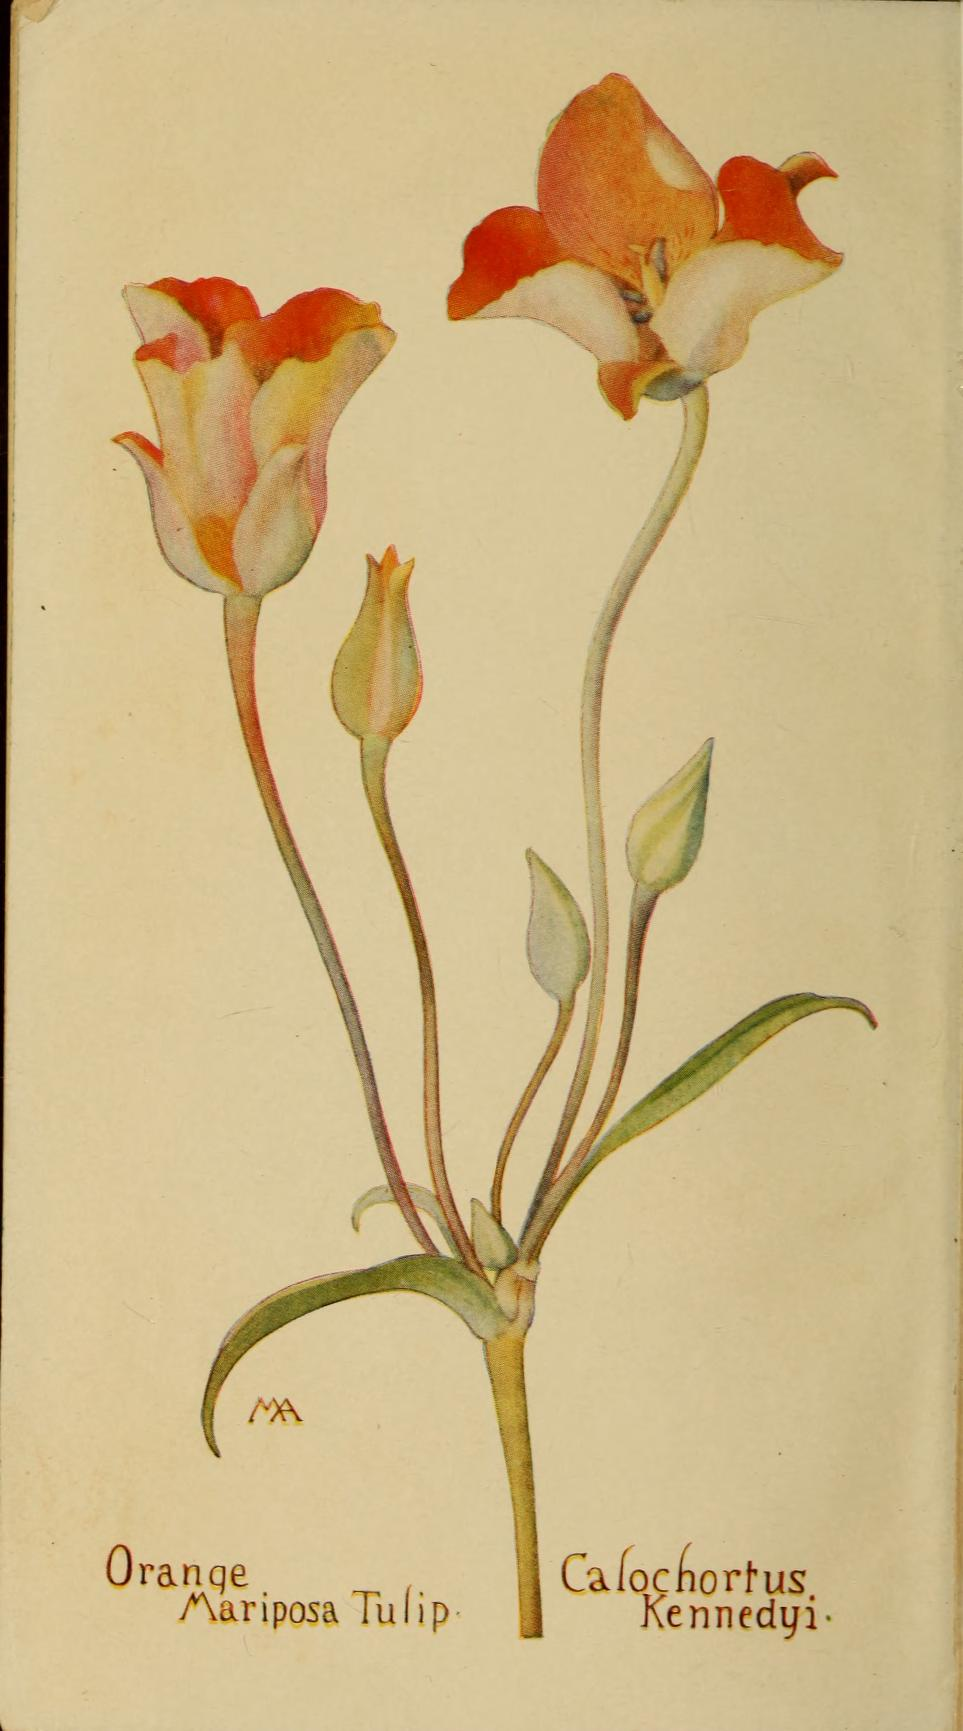 """Orange Mariposa Tulip"" (Calochortis Kennedyi). Frontispiece."